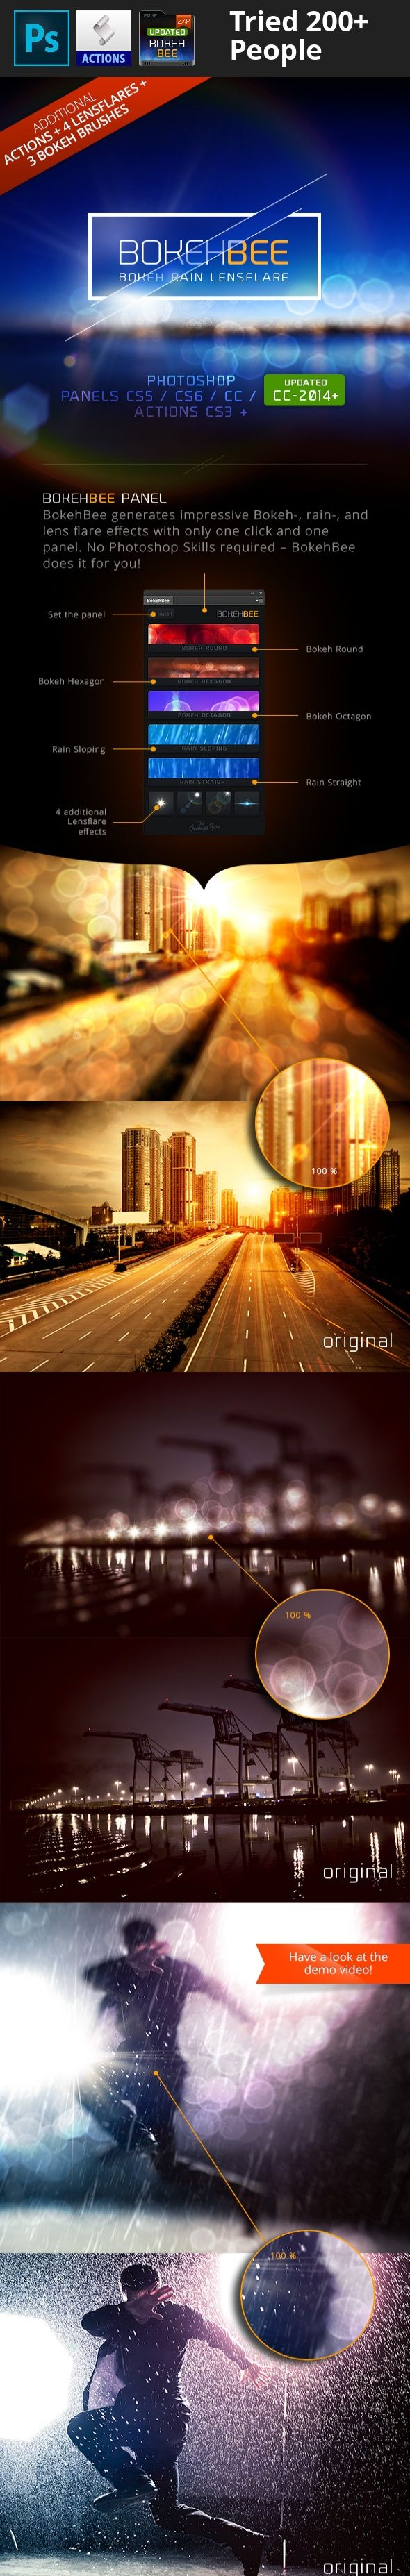 blur, bokeh, depth of field, drops, focus, highlights, image, lens flares, lensflare, light, occurs, panel, plugin, rain, reflections, shift, shower, source, specular, tilt, tilt shift, water BokehBee – Bokeh Rain Lens-Flare Generator Extension panel for Adobe Photoshop® CS5, CS6, CC, CC-2014 + Actions Set for Adobe Photoshop® CS3 +  BokehBee generates impressive Bokeh-, rain-, and lens flare effects with only one click and one panel! No extensive Photoshop knowledge is required – Bok...